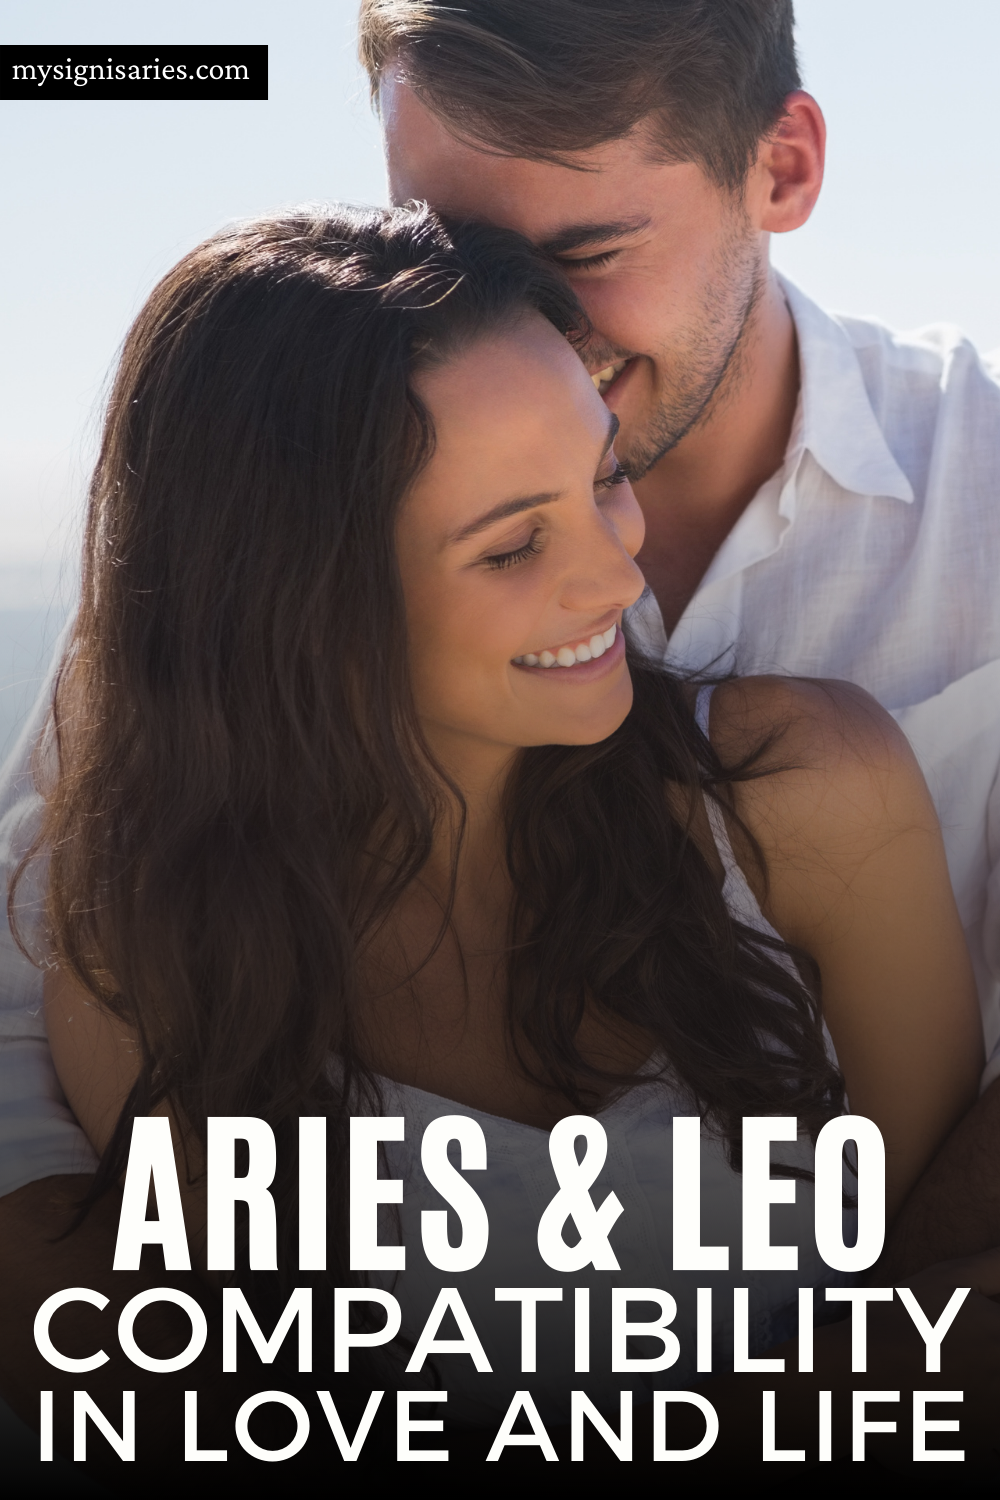 Aries And Leo Compatibility In Love And Life #arieslove #aries #ariessign #leo #arieslove